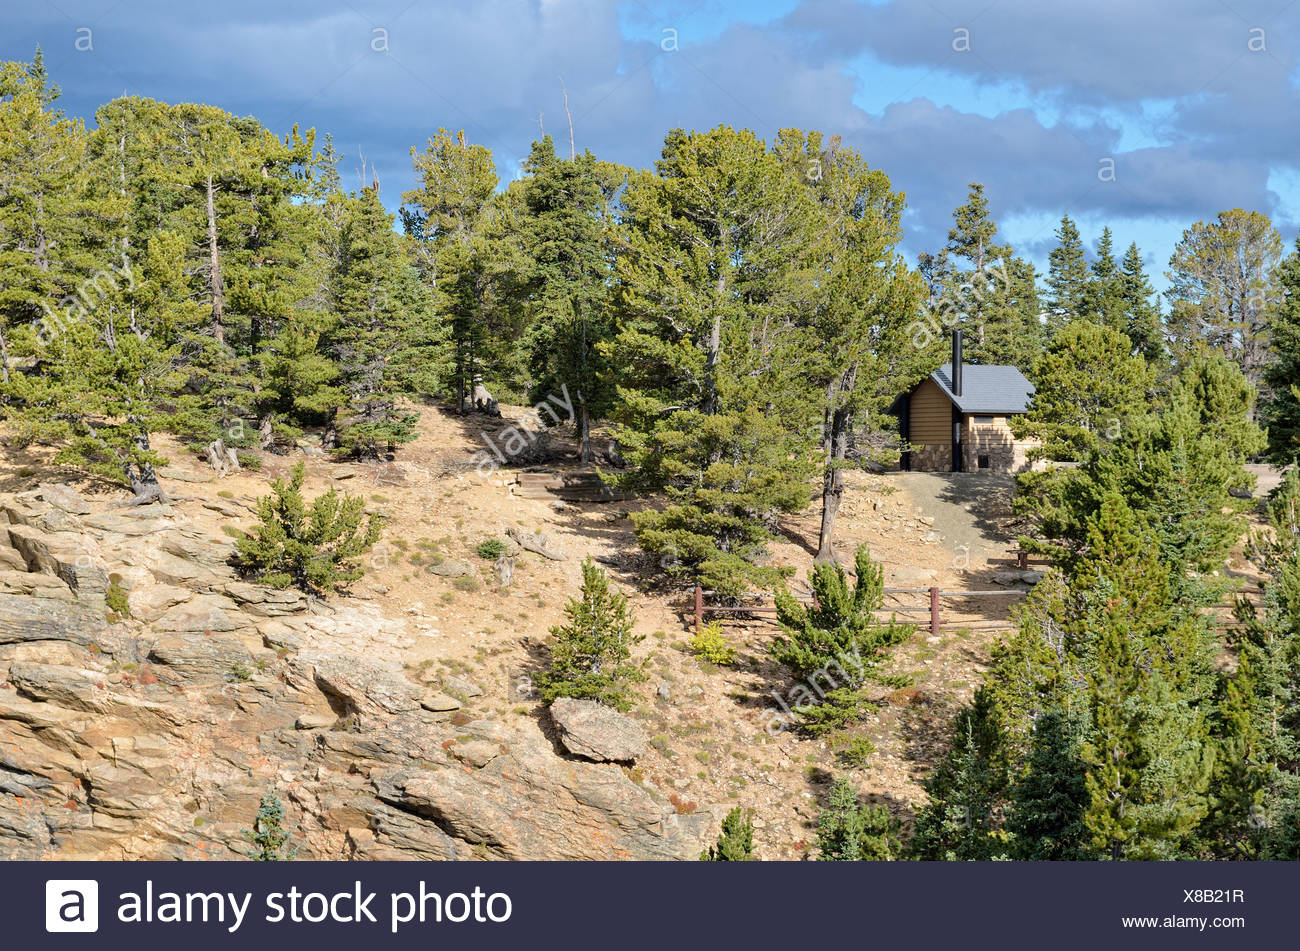 Toilet hut at Juniper Pass, State Road 103, Mount Evans Wilderness Arapaho National Forest, Idaho Springs, Colorado, USA - Stock Image